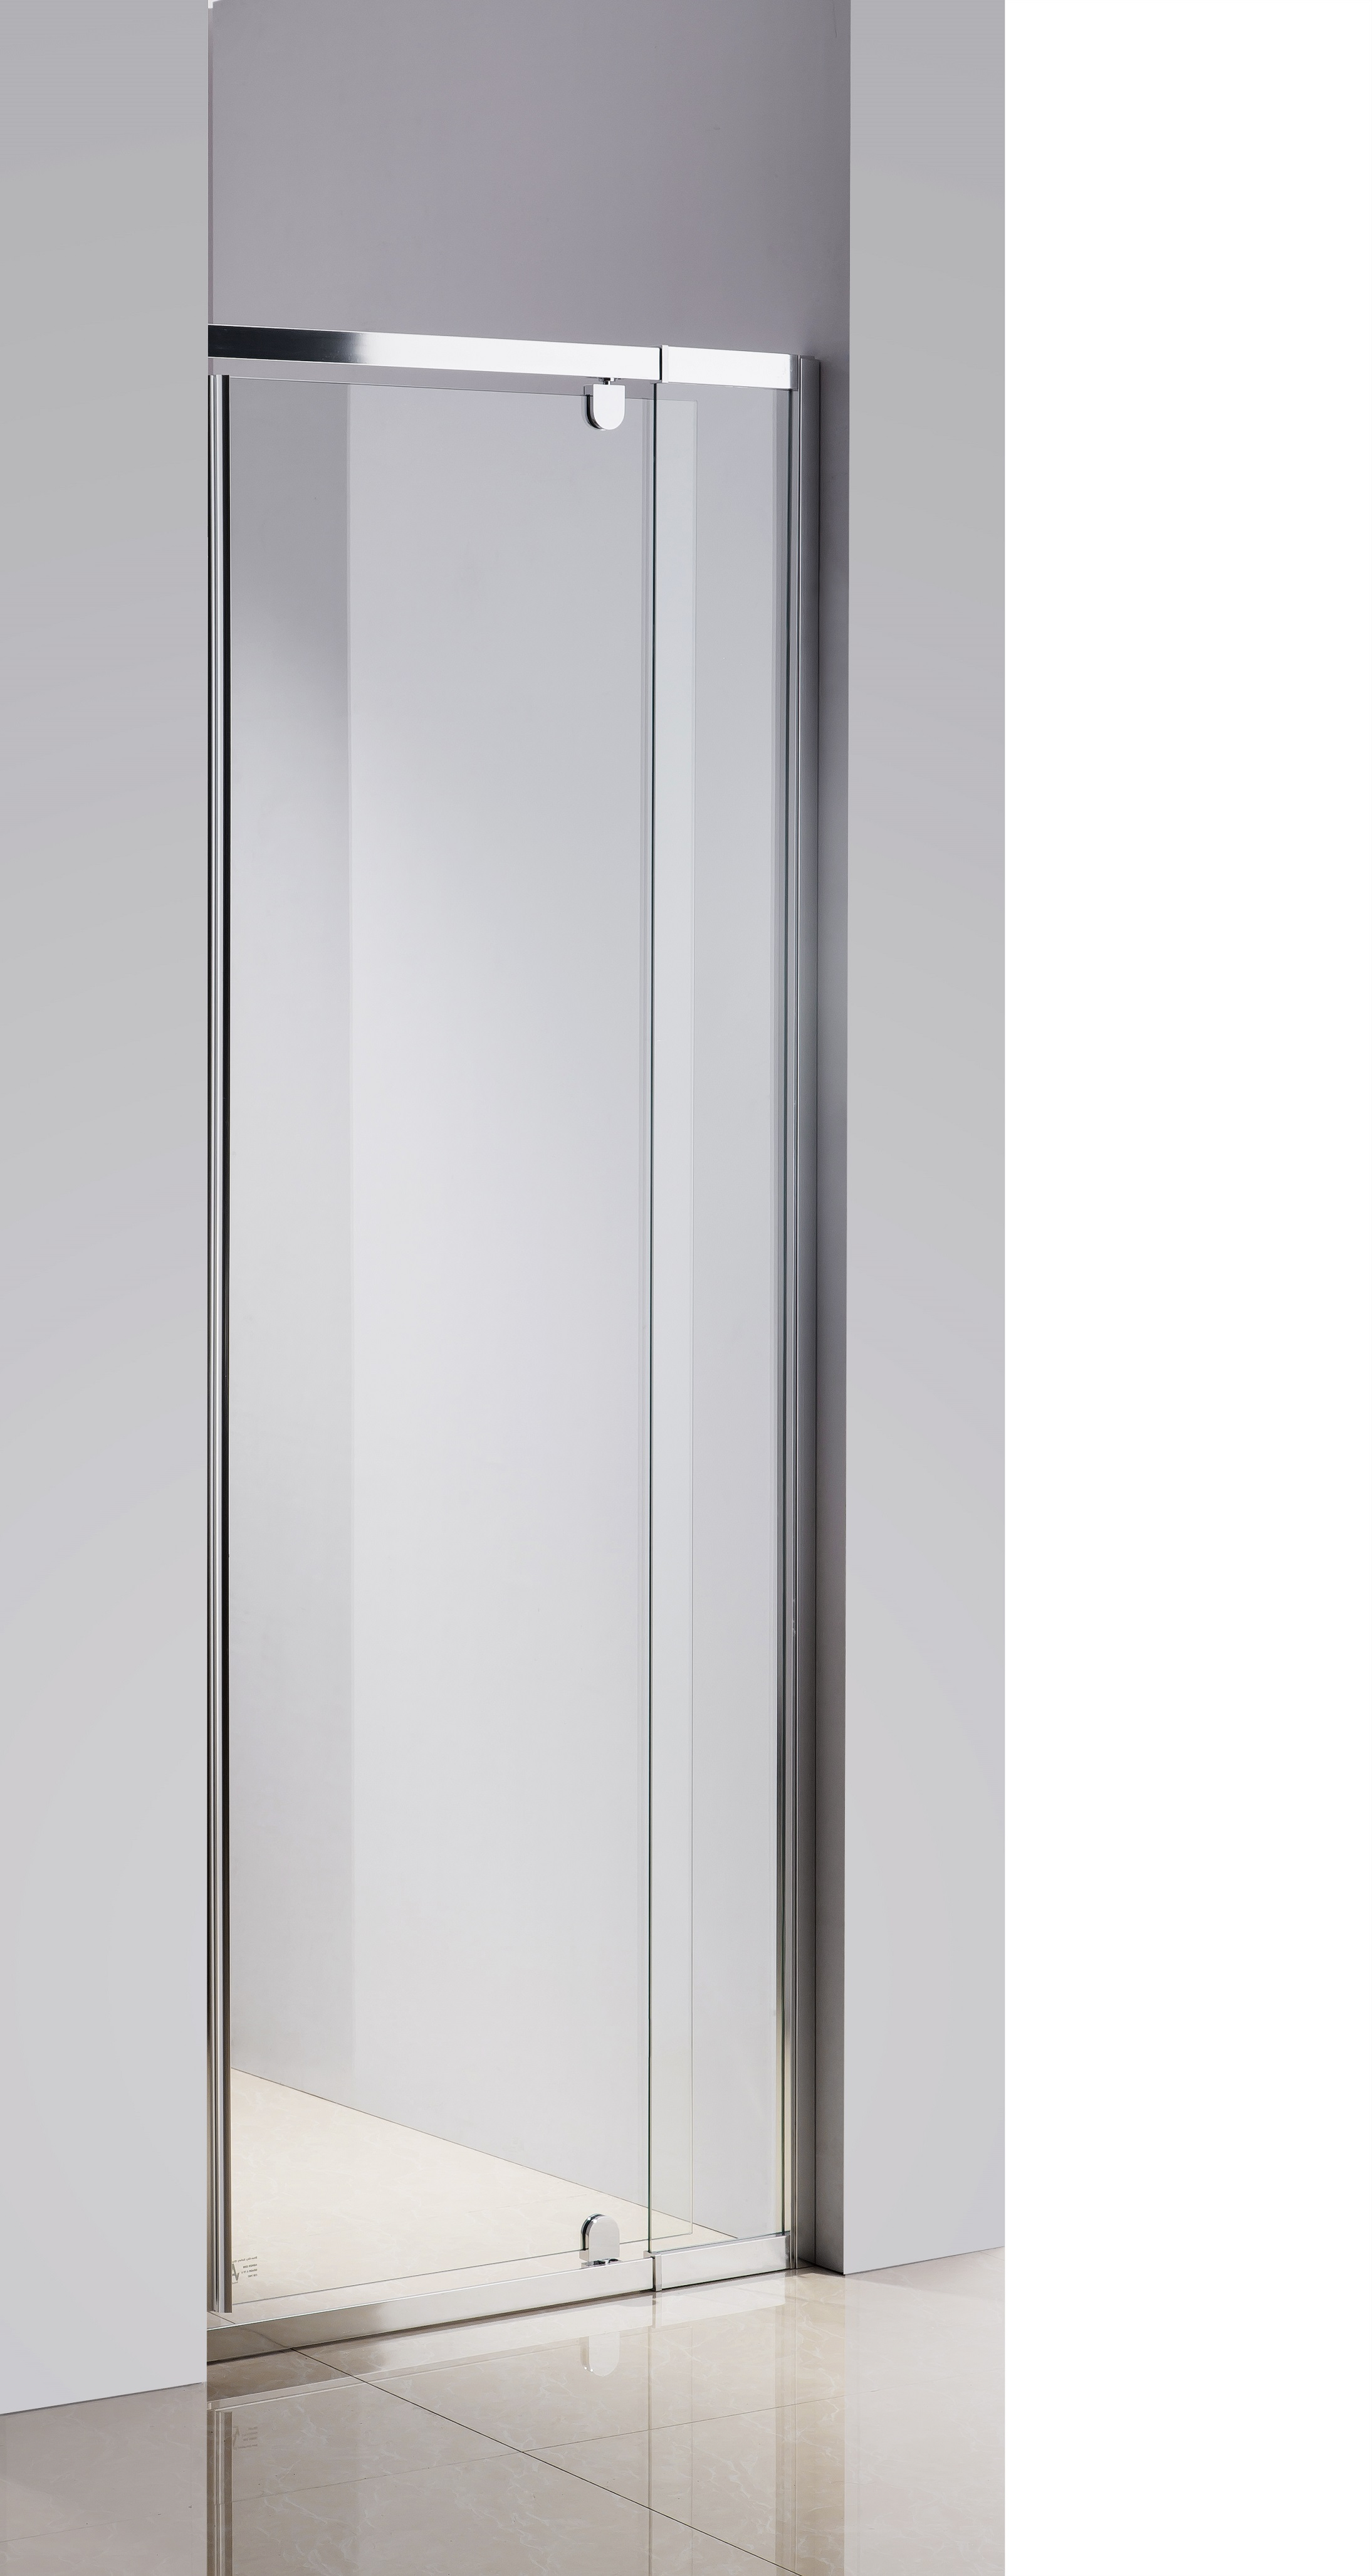 720-800 Finger Pull Wall to Wall Shower Screen By Della Francesca  Z2681